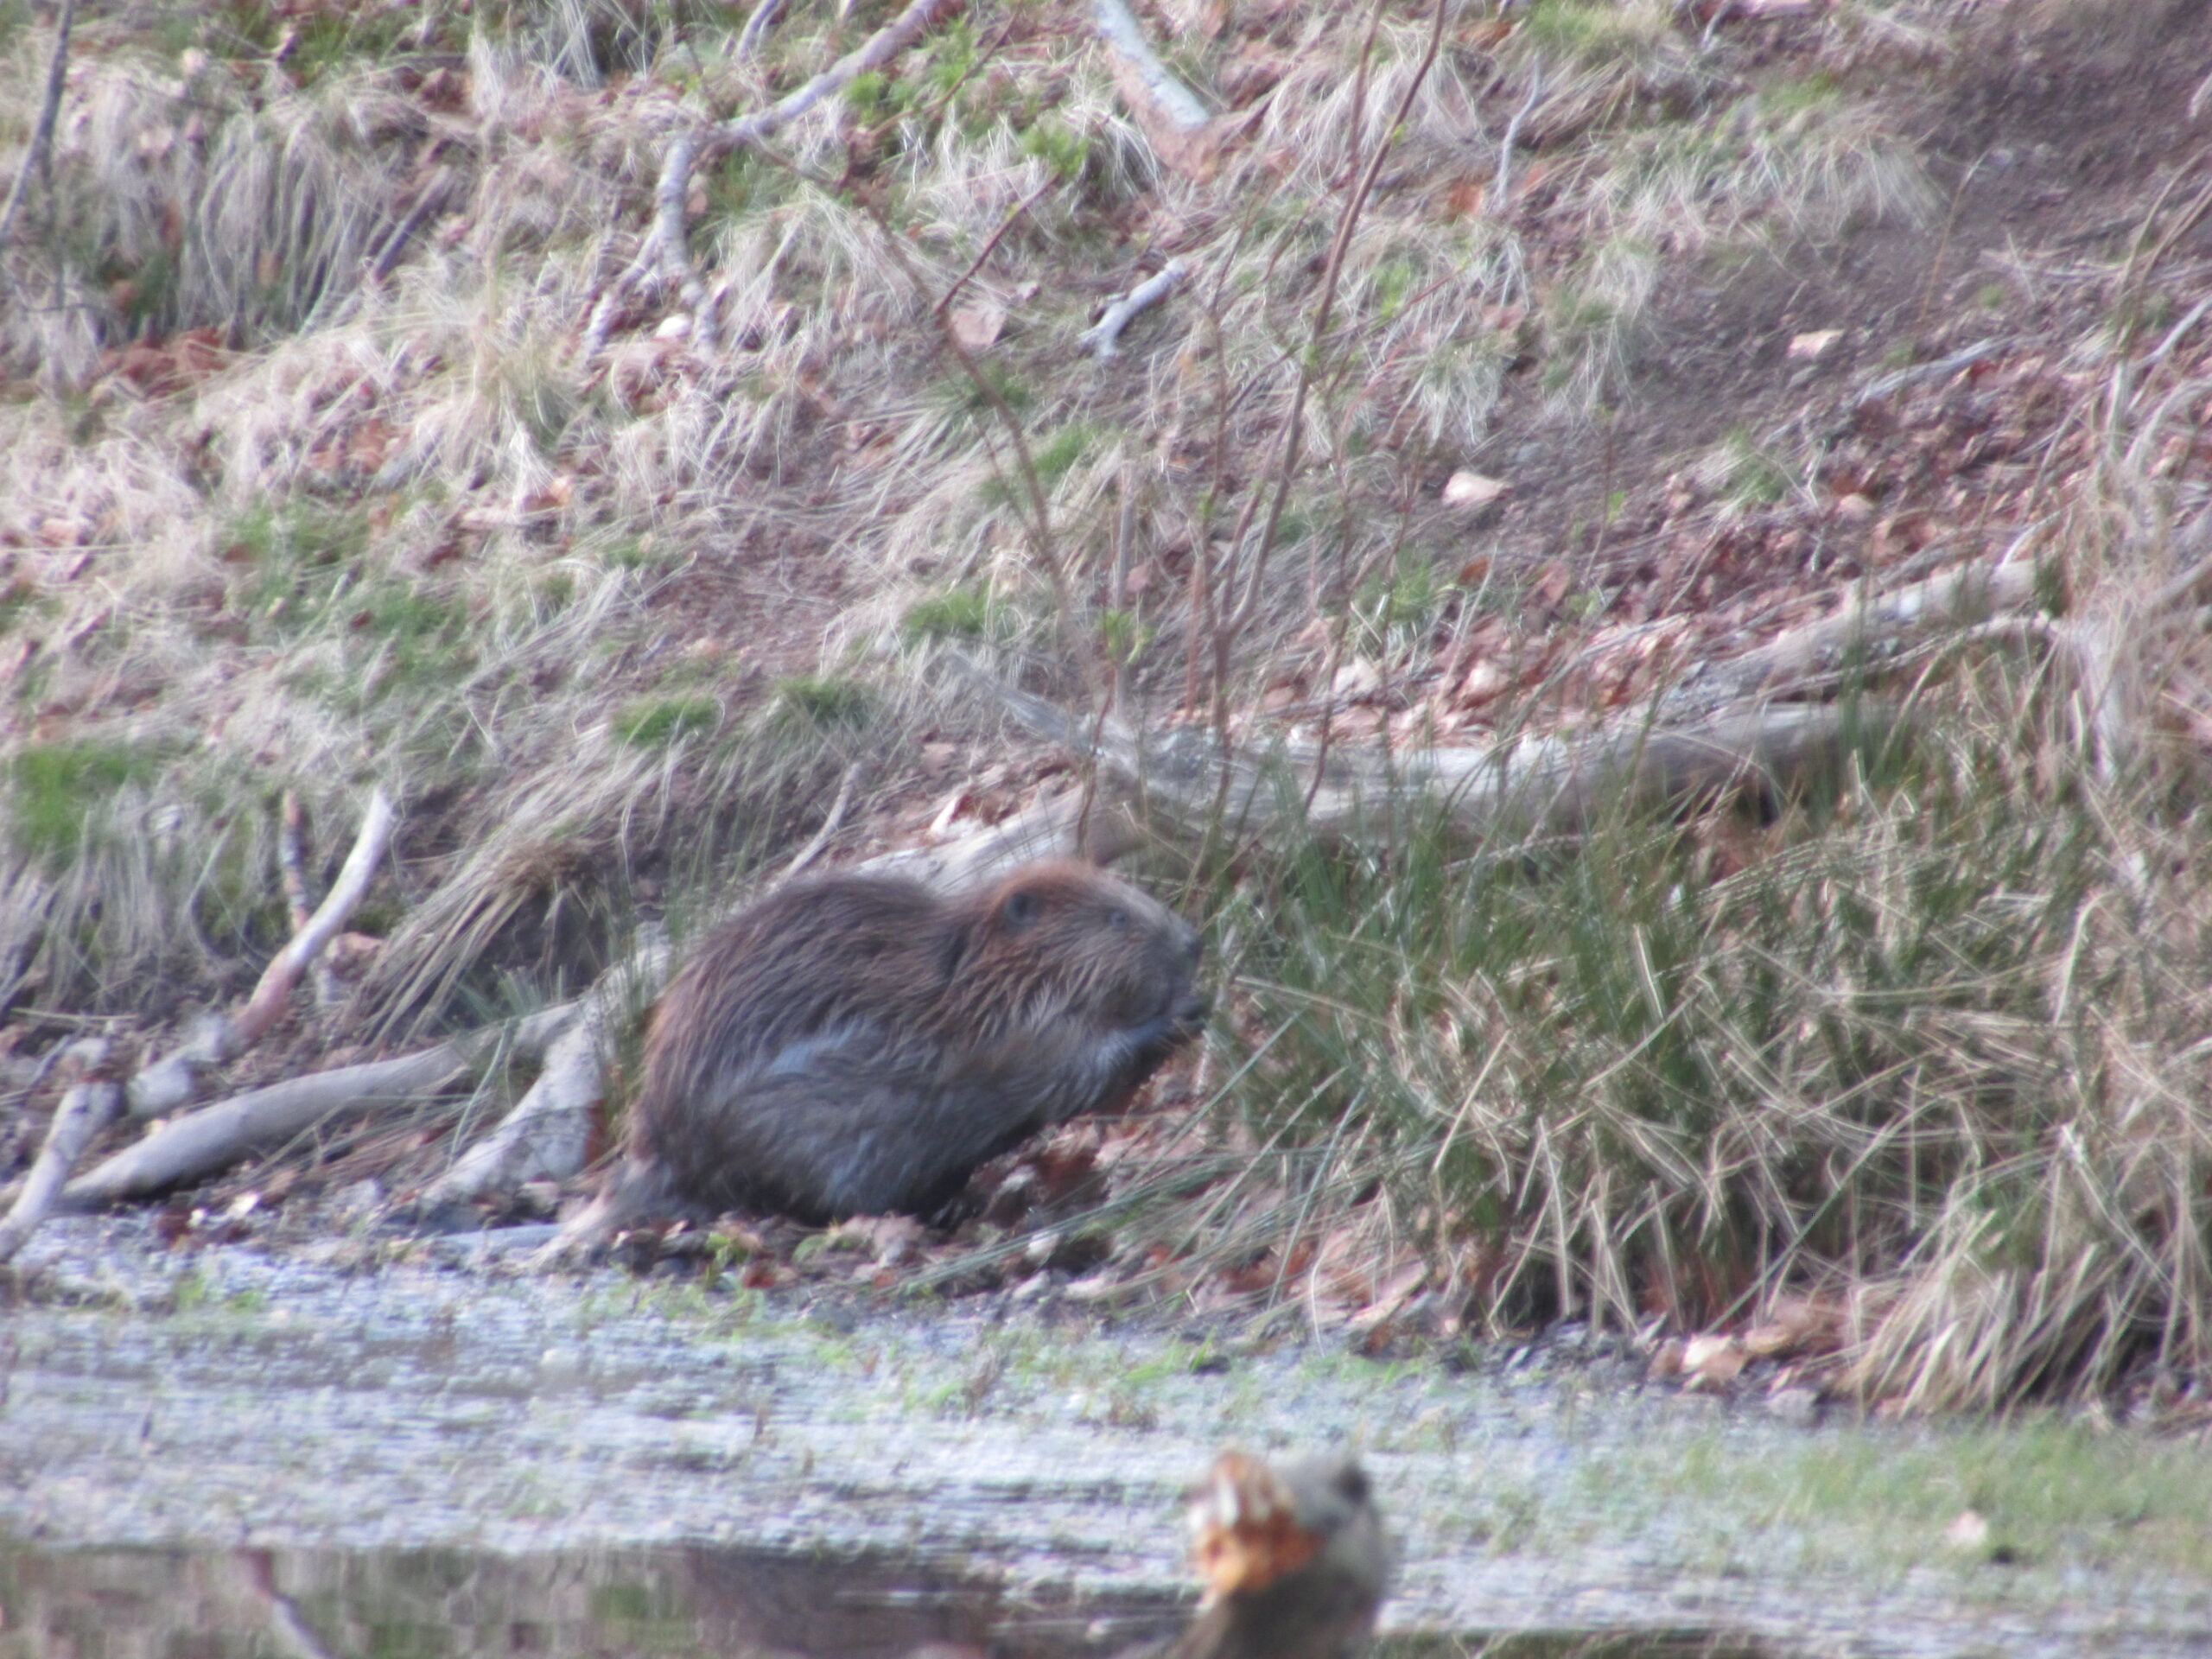 Brilliant to see our Beaver pals again!